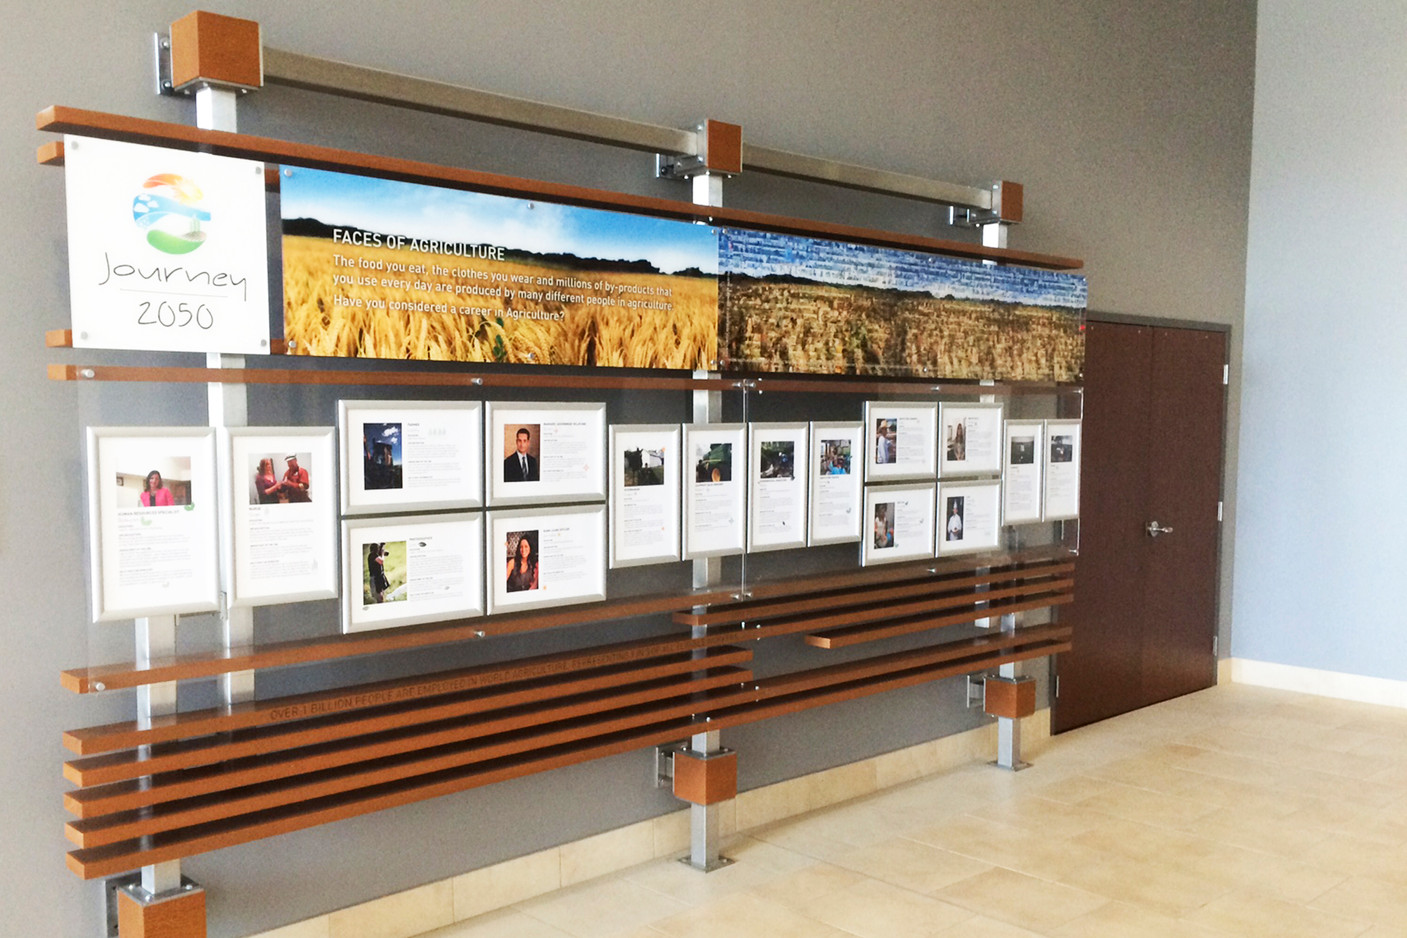 Western Event Centre Lobby Displays